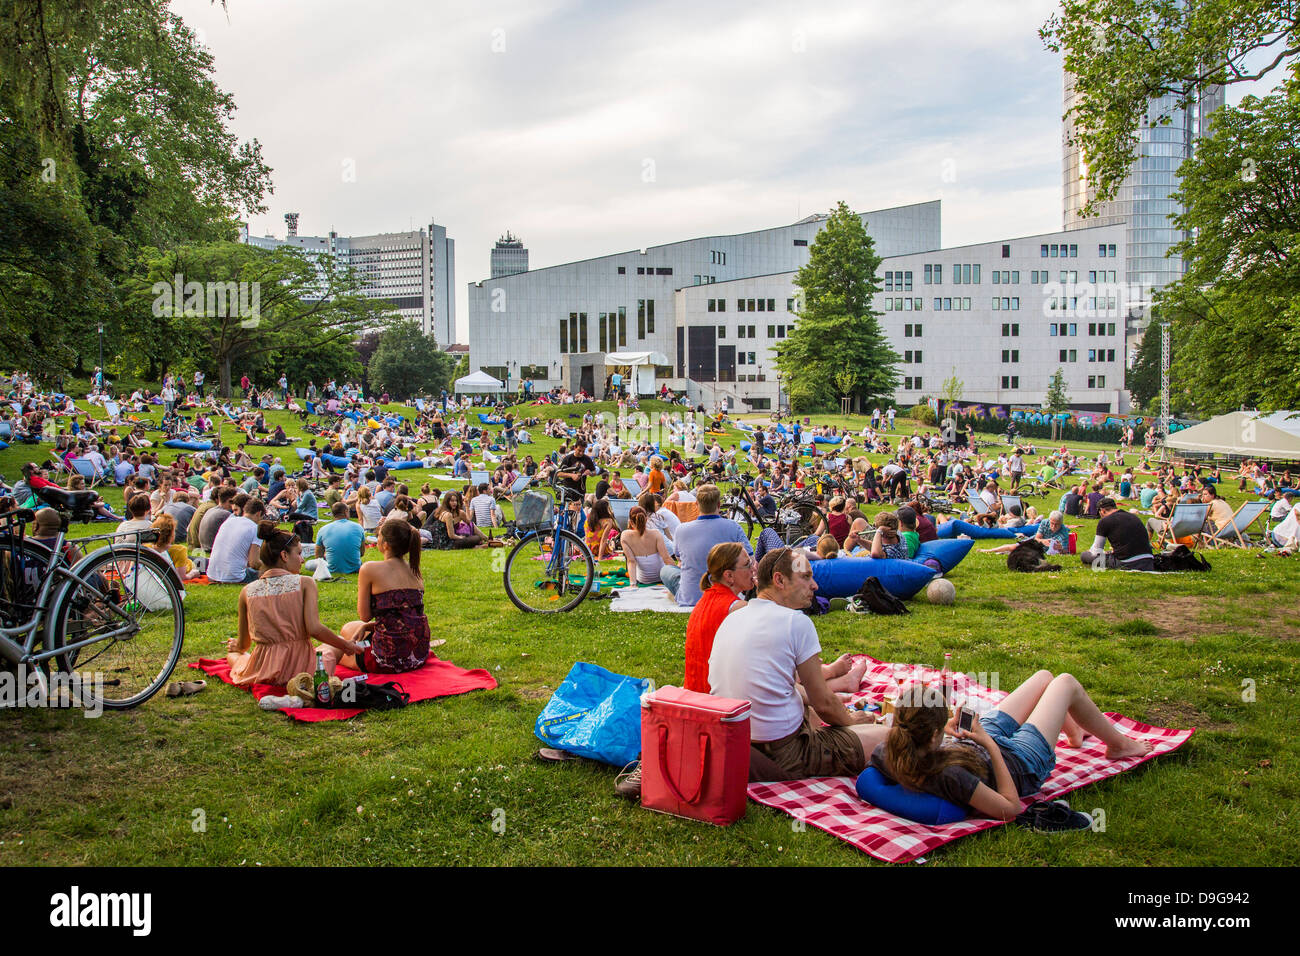 Electronic music festival in a public city park, summer festival in Essen, Germany. Picnic and electronic sound. - Stock Image